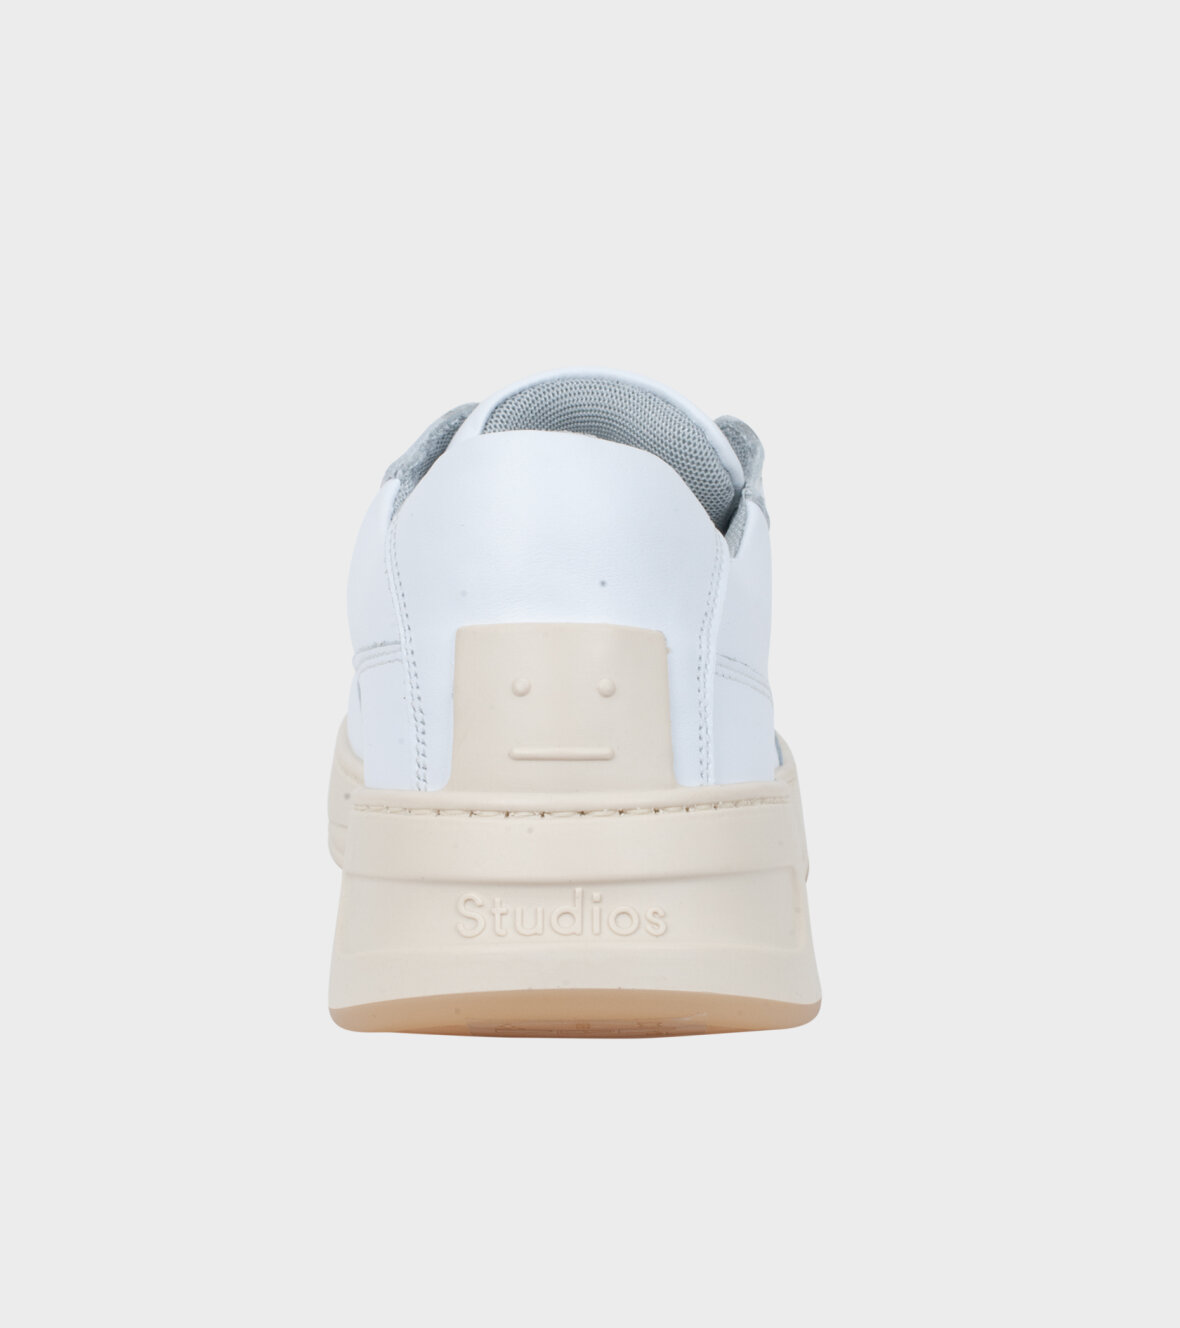 OFF WHITE Shoes OffWhite | White shoes, Women